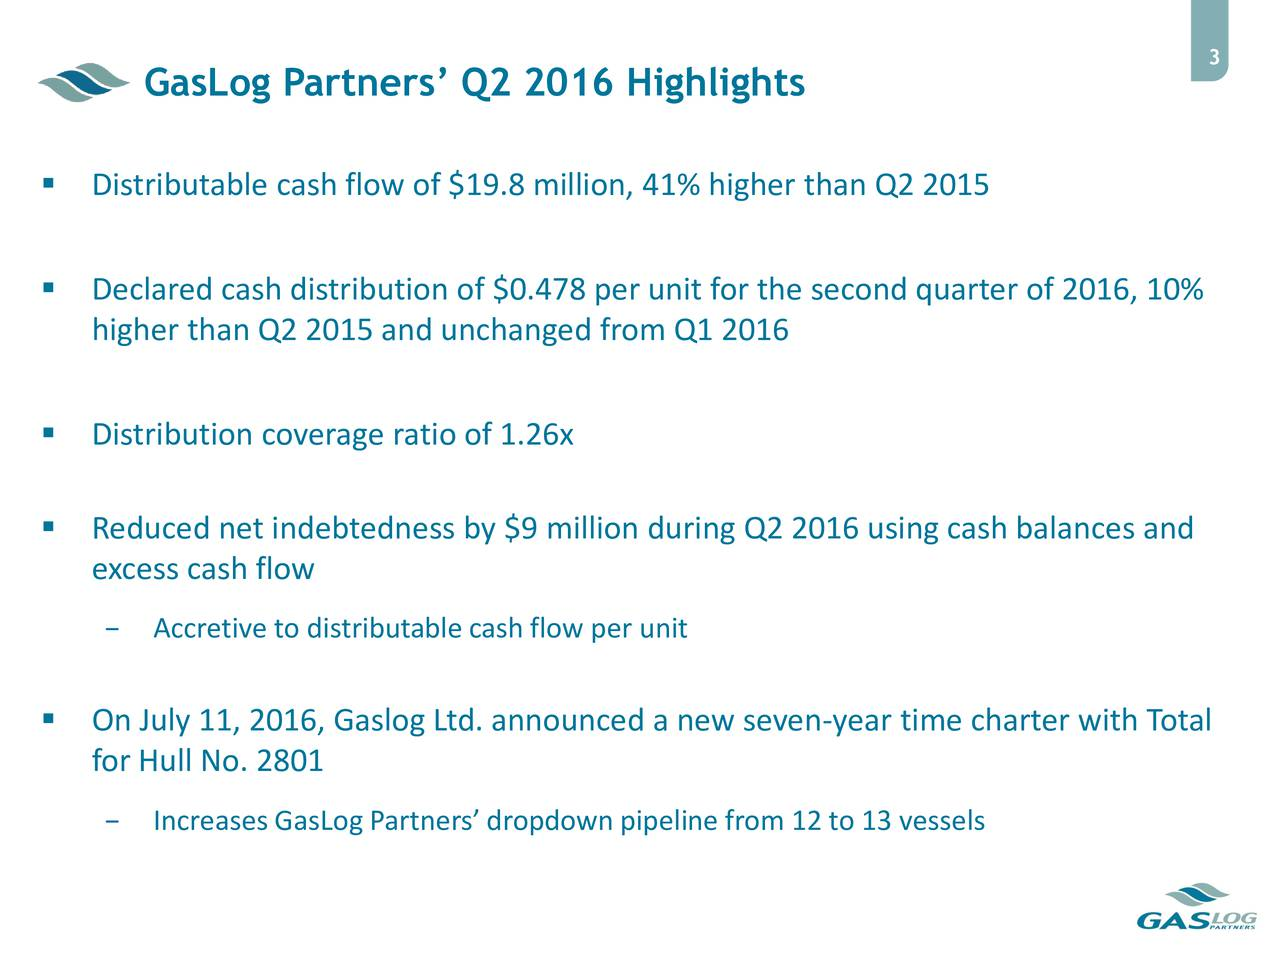 GasLog Partners Q2 2016 Highlights Distributable cash flow of $19.8 million, 41% higher than Q2 2015 Declared cash distribution of $0.478 per unit for the second quarter of 2016, 10% higher than Q2 2015 and unchanged from Q1 2016 Distribution coverage ratio of 1.26x Reduced net indebtedness by $9 million during Q2 2016 using cash balances and excess cash flow Accretive to distributable cash flow per unit On July 11, 2016, Gaslog Ltd. announced a new seven-year time charter with Total for Hull No. 2801 Increases GasLog Partners dropdown pipeline from 12 to 13 vessels